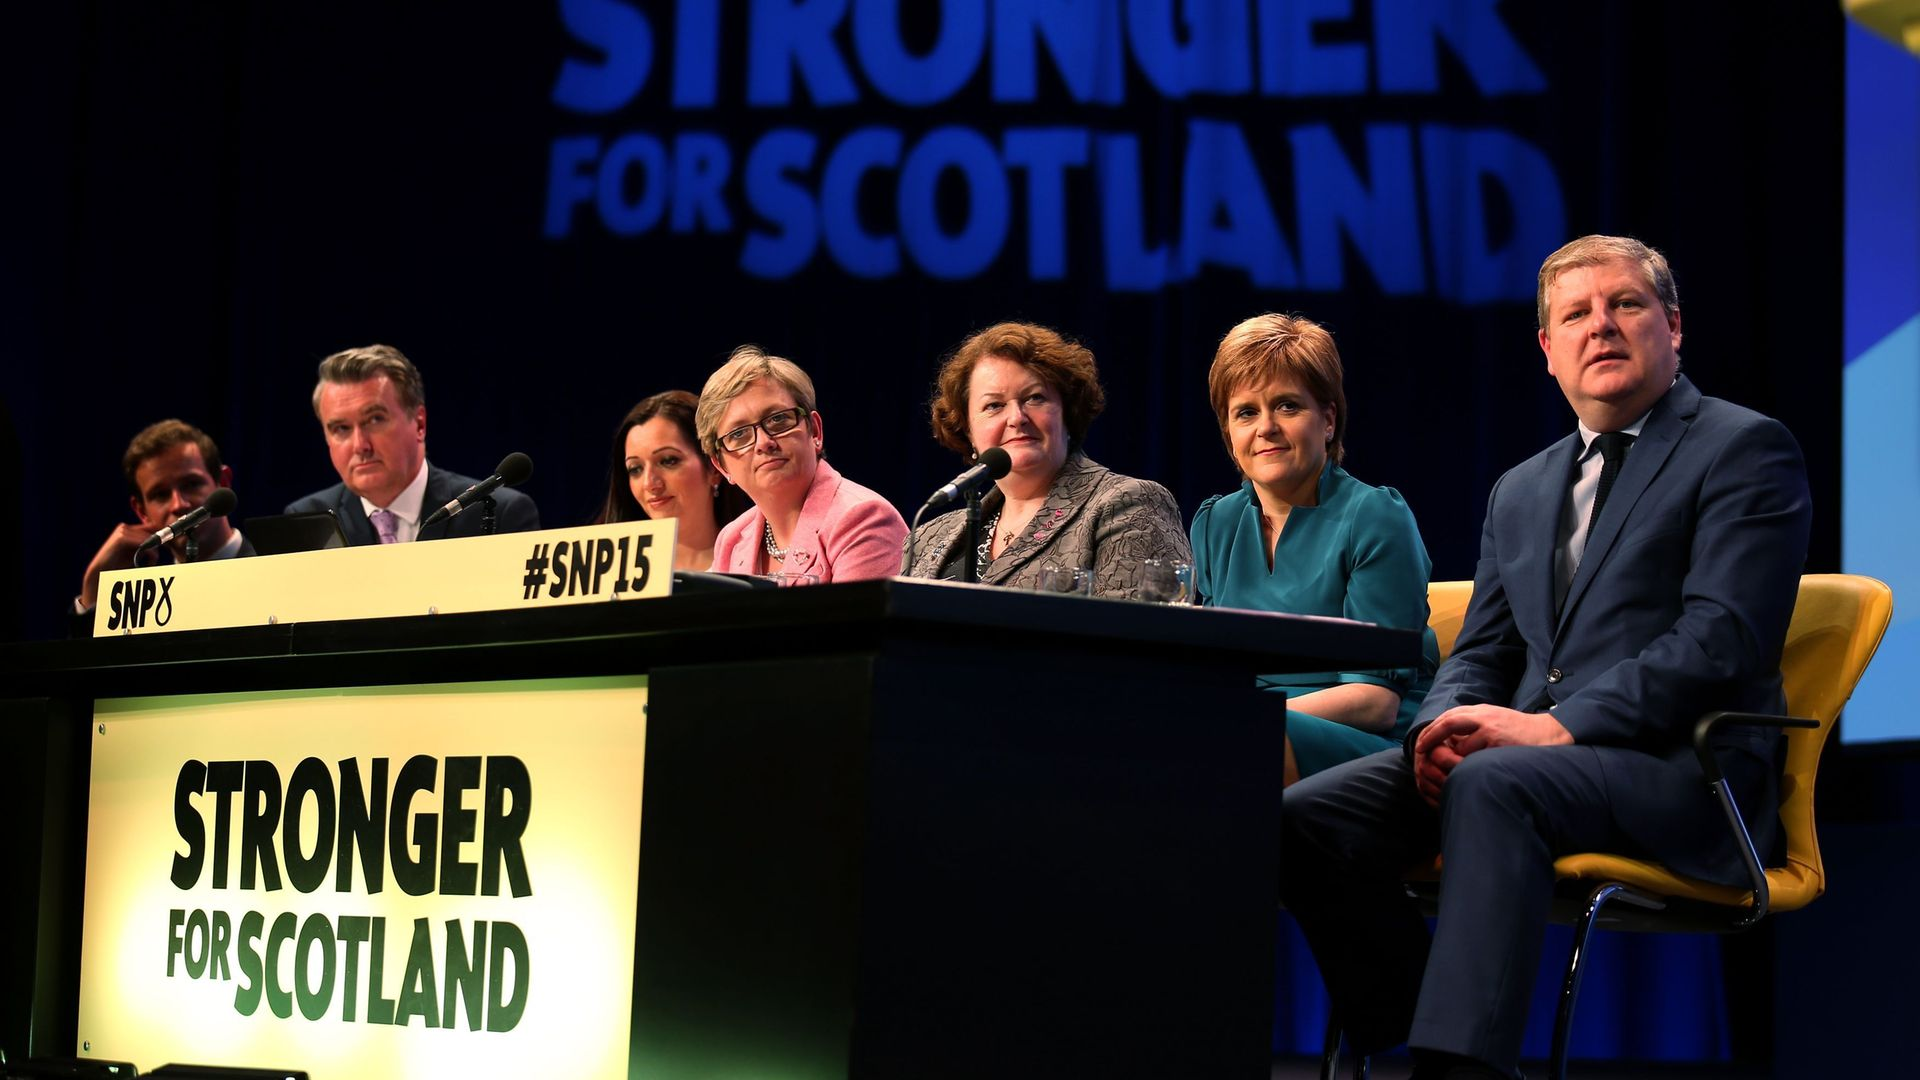 Nicola Sturgeon on a panel at an SNP conference - Credit: PA